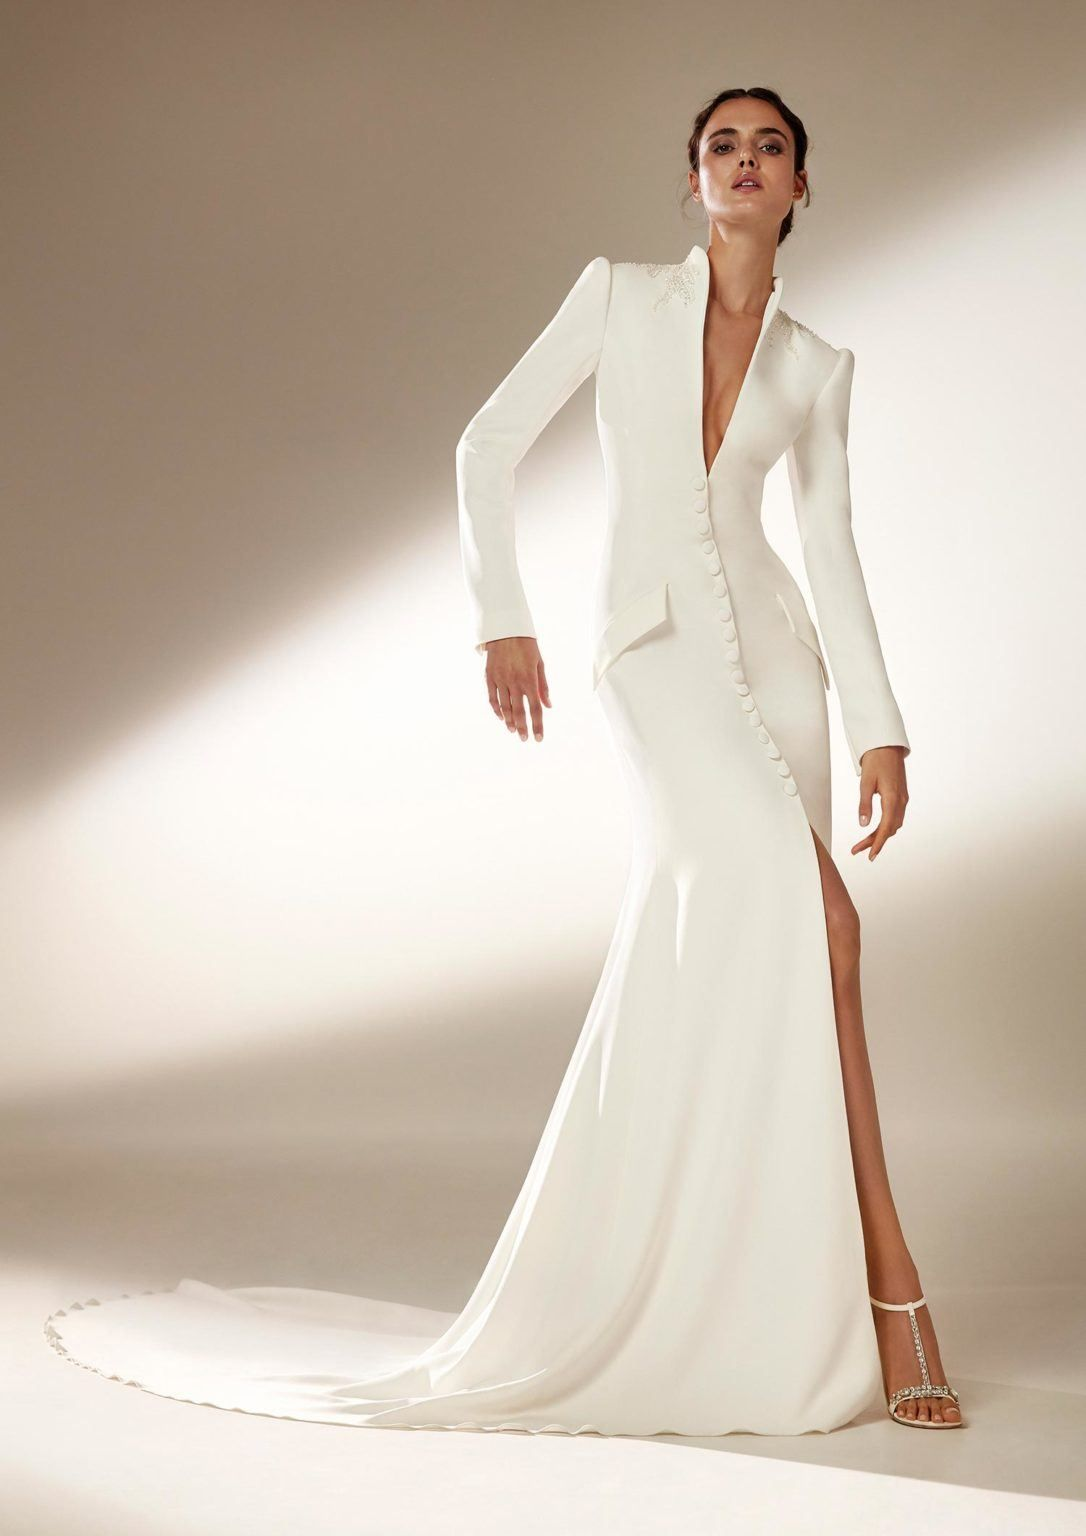 Atelier Pronovias 2021 Collection: Here's Your Fir